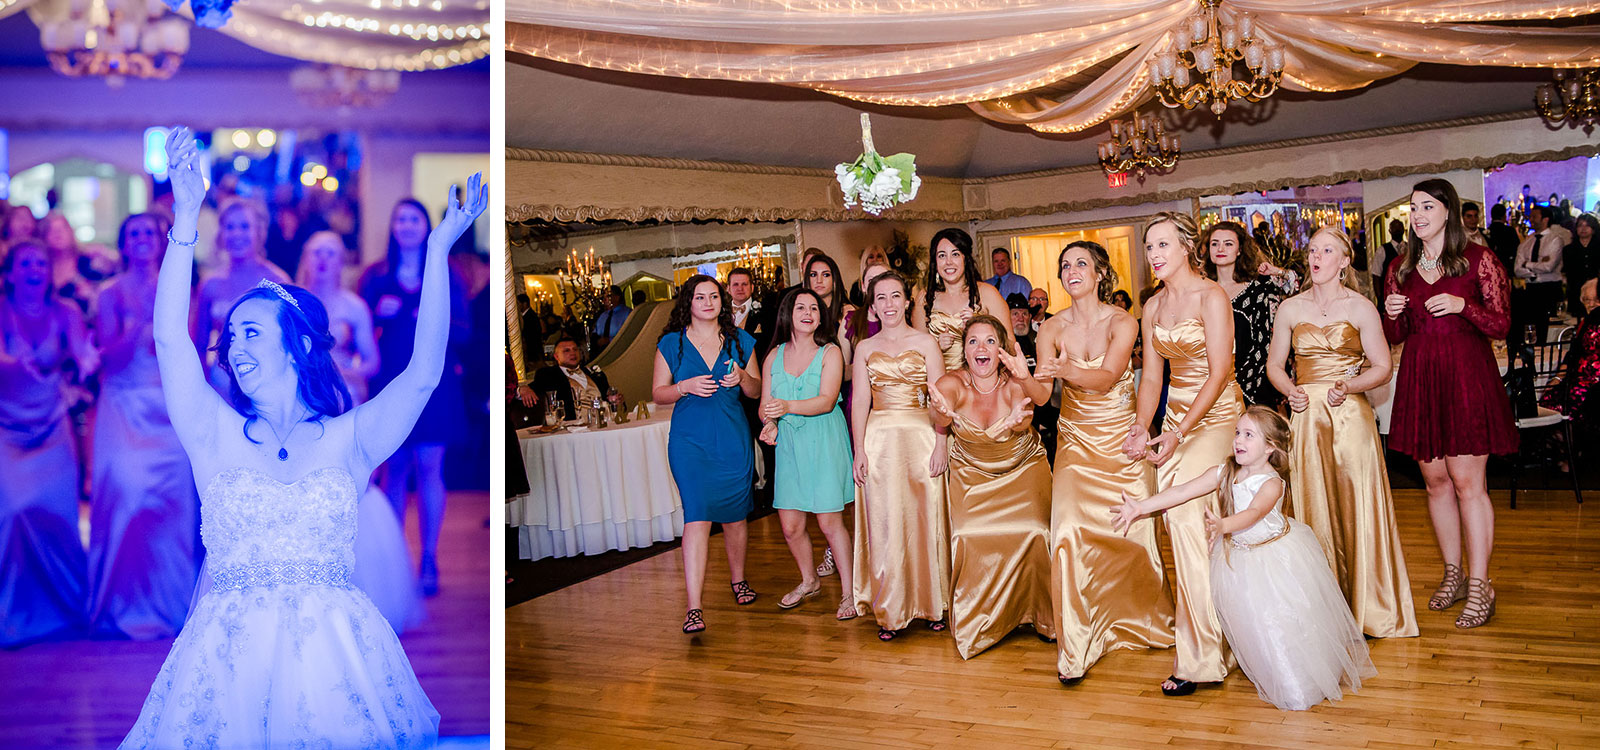 Eric_and_Christy_Photography_Blog_Wedding_Eva_Andrew-59-60